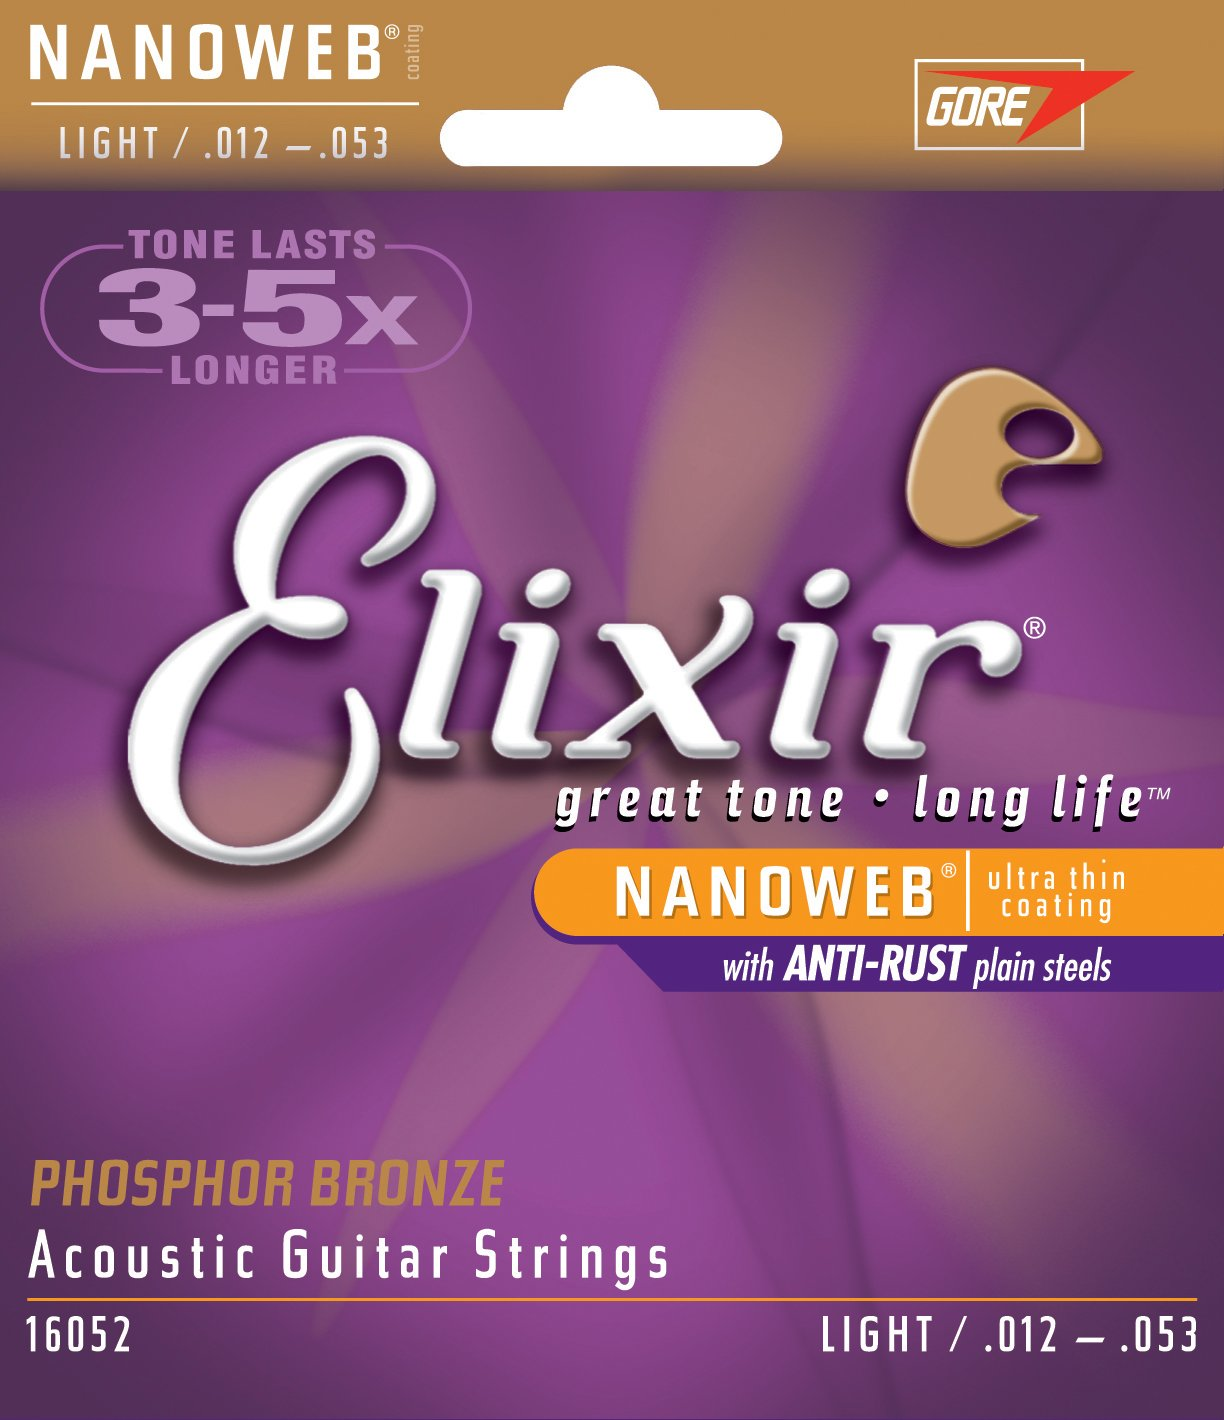 Elixir Strings Acoustic Phosphor Bronze Guitar Strings with NANOWEB Coating, Light (.012-.053)